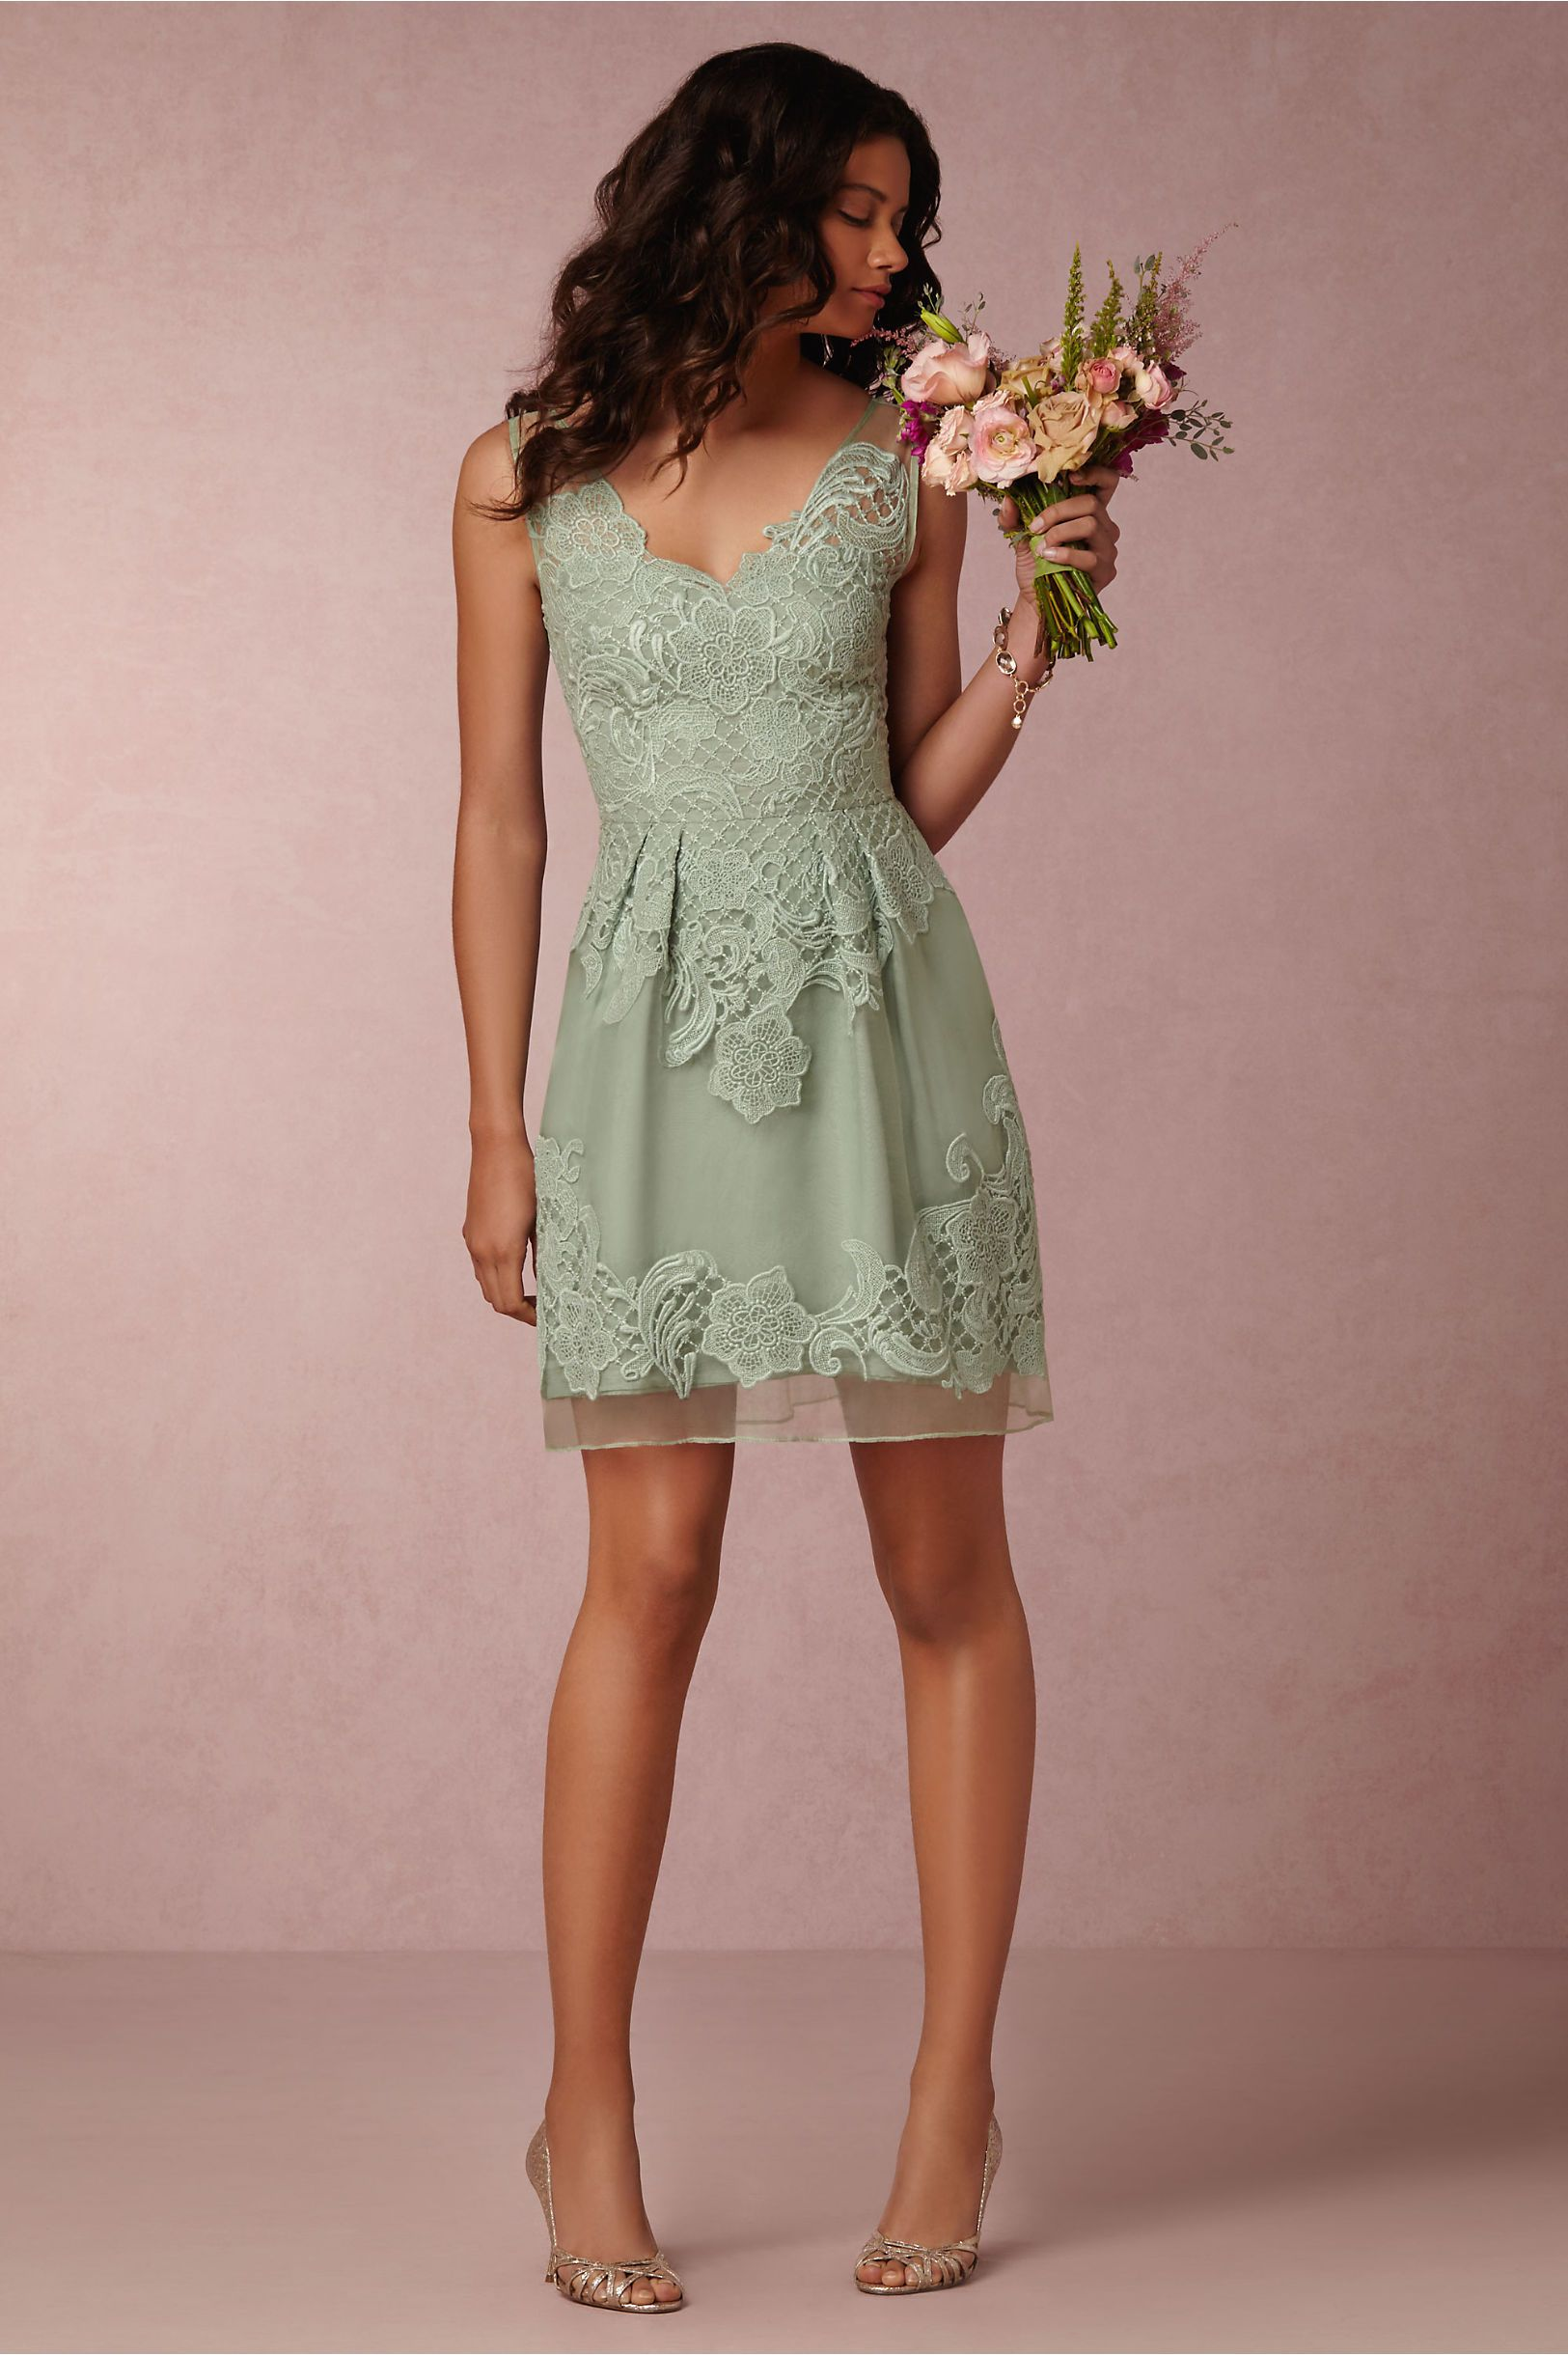 Celestina Dress Sage Bridesmaid Dresses Short Bridesmaid Dresses Green Bridesmaid Dresses